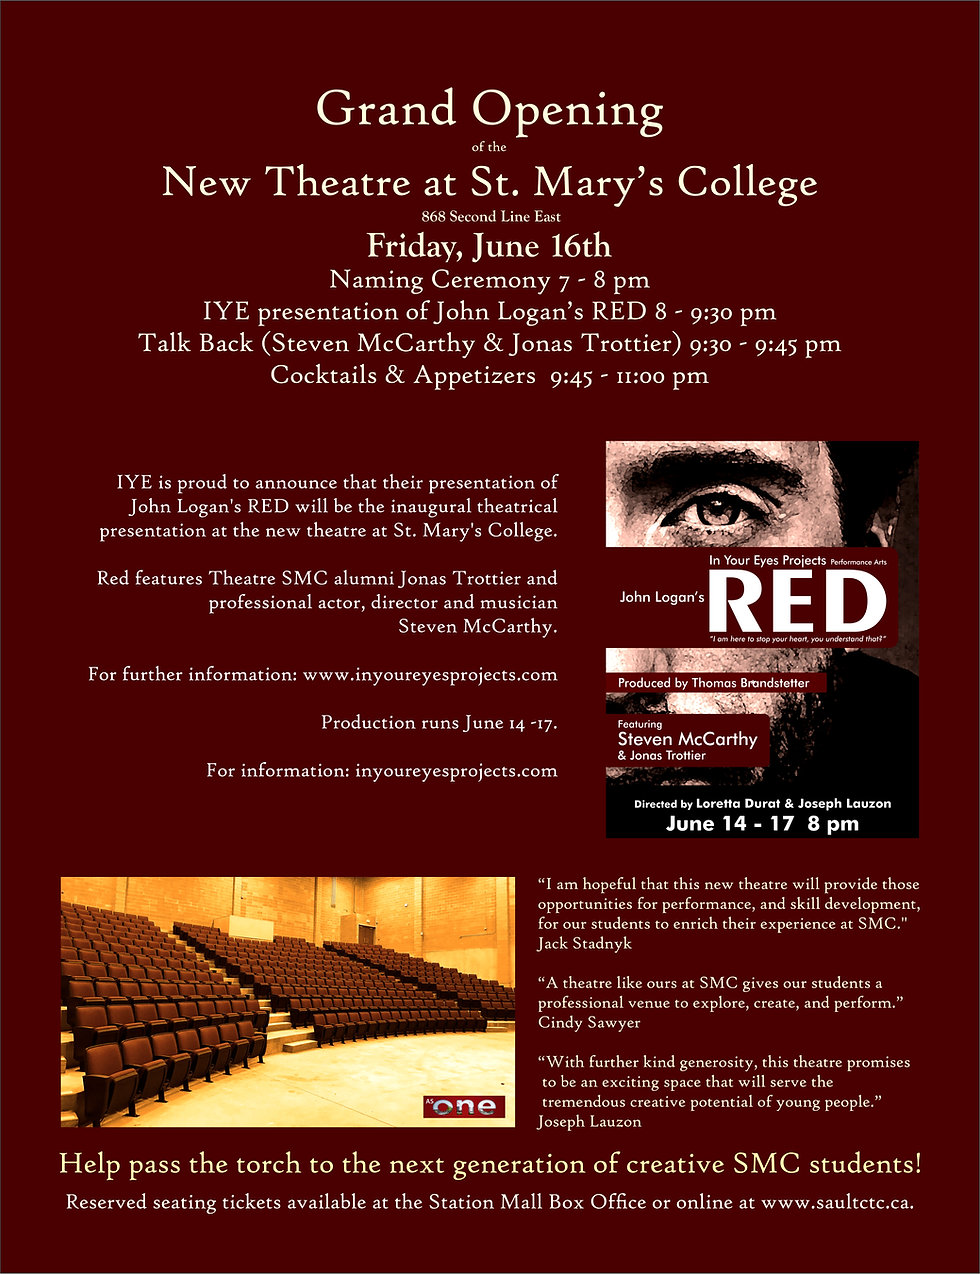 Grand Opening of the St. Mary's College Community Theatre